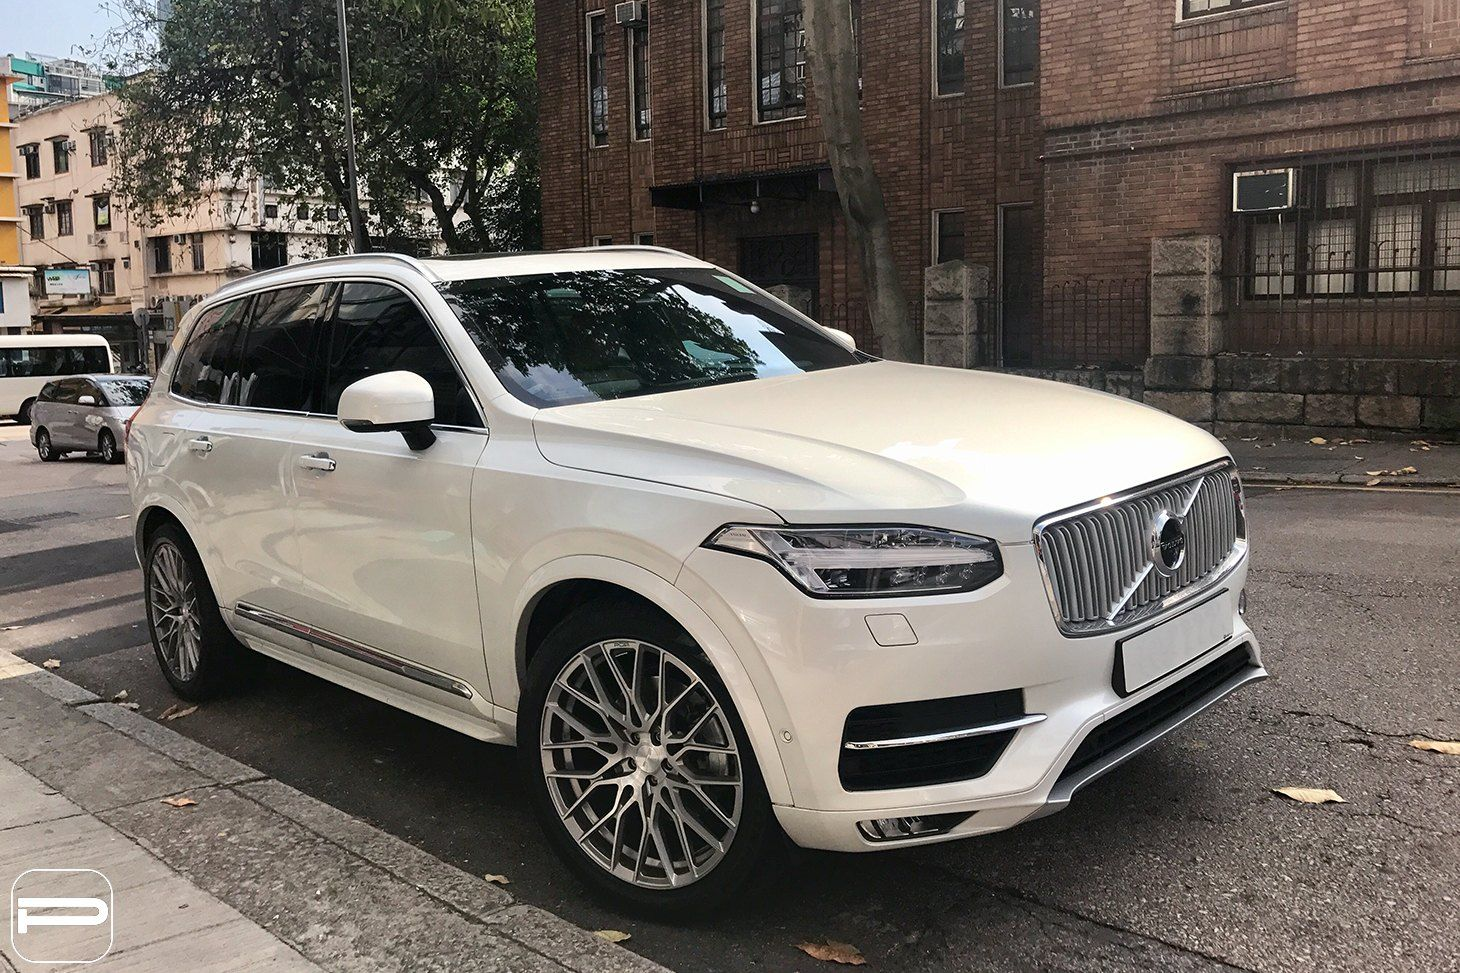 White Volvo Xc90 With Chrome Billet Grille Photo By Pur Wheels Volvo Xc90 Volvo Cars Volvo